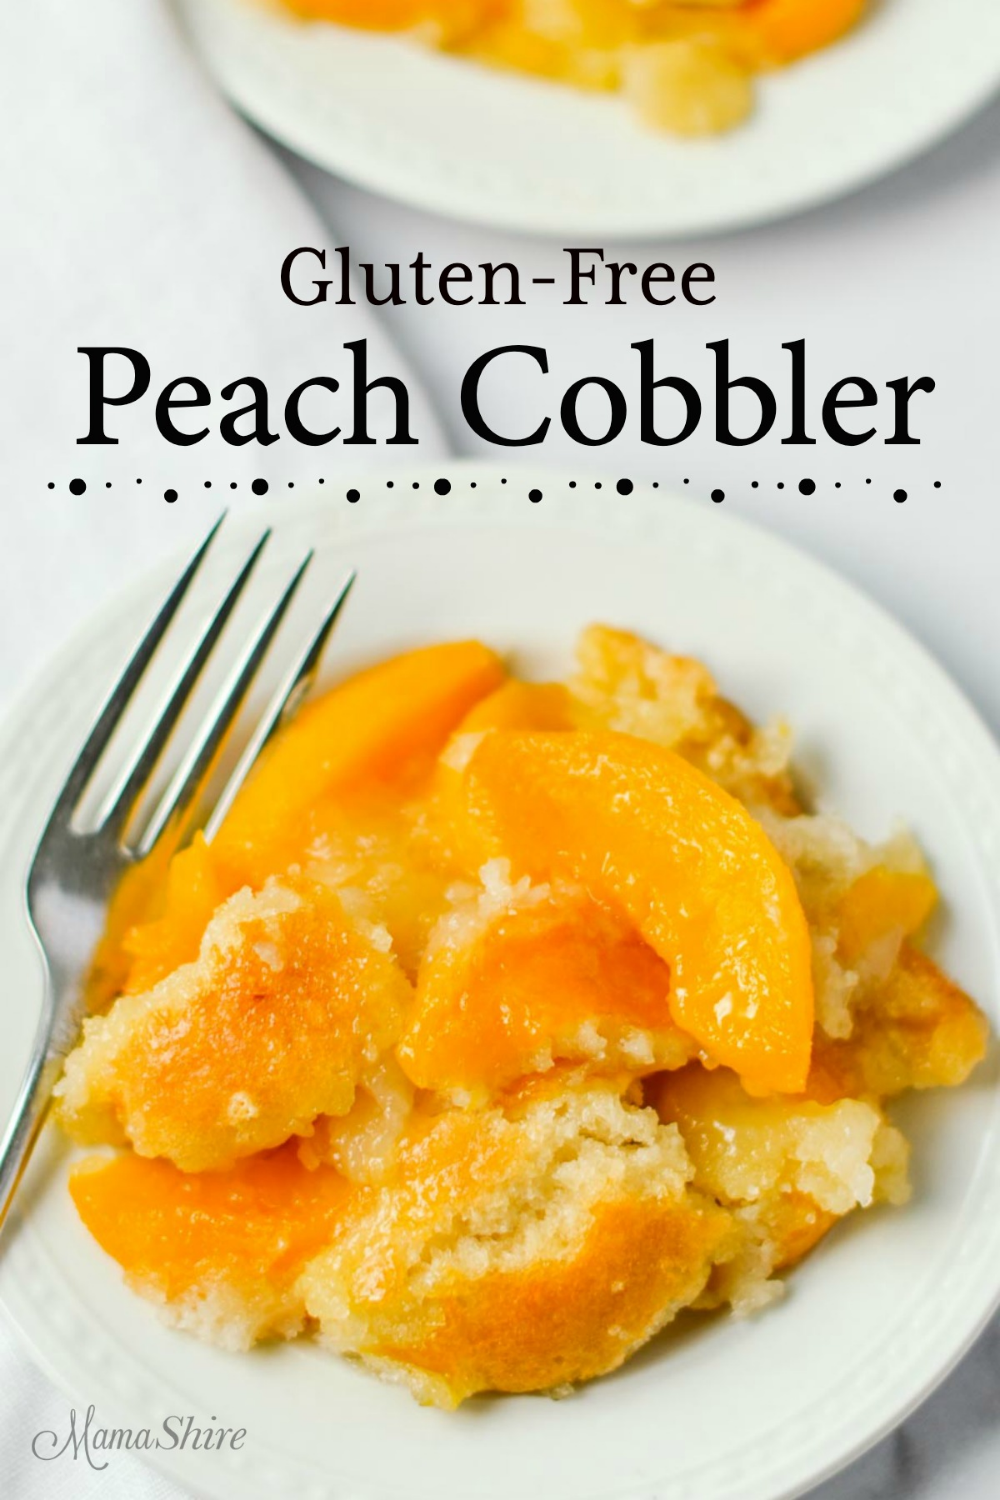 Easy Gluten-Free Peach Cobbler Recipe This easy to make gluten-free peach cobbler tastes incredible. It'll quickly become a favorite! Use with fresh, frozen, or canned peaches. Dairy-free.